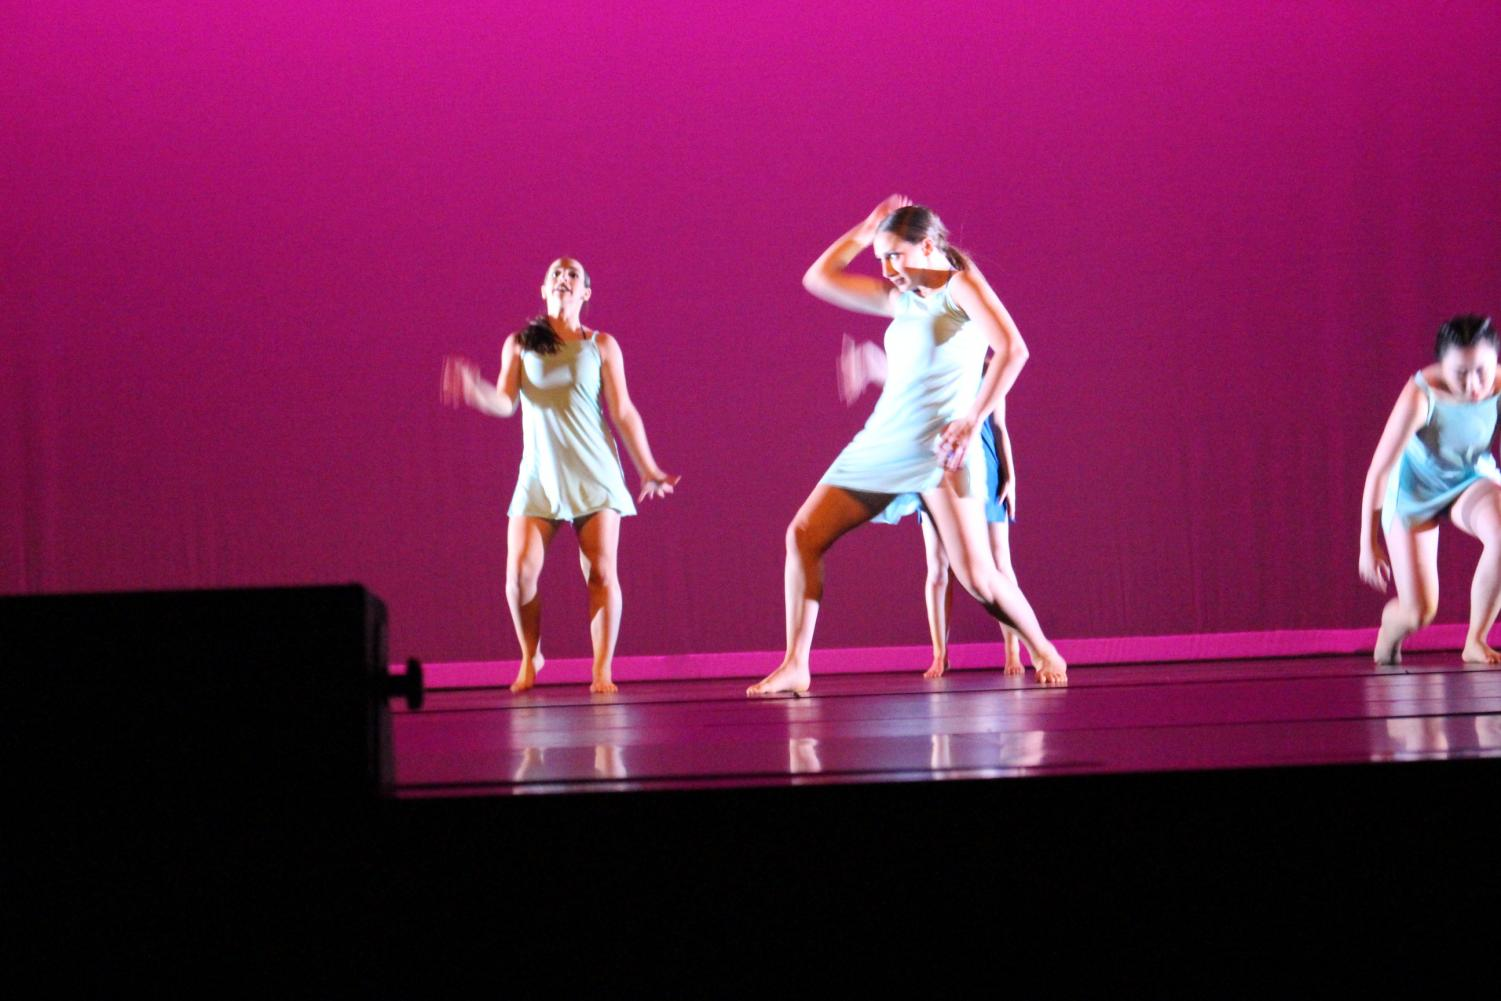 Elli Freeman, Jessica Goldvekht, Misako Kasagi, Jocelyn Silk, Zoey Silver perform the dance Despondency choreographed by Masha Khorolinsky. This piece was dedicated to Ria Lodd.